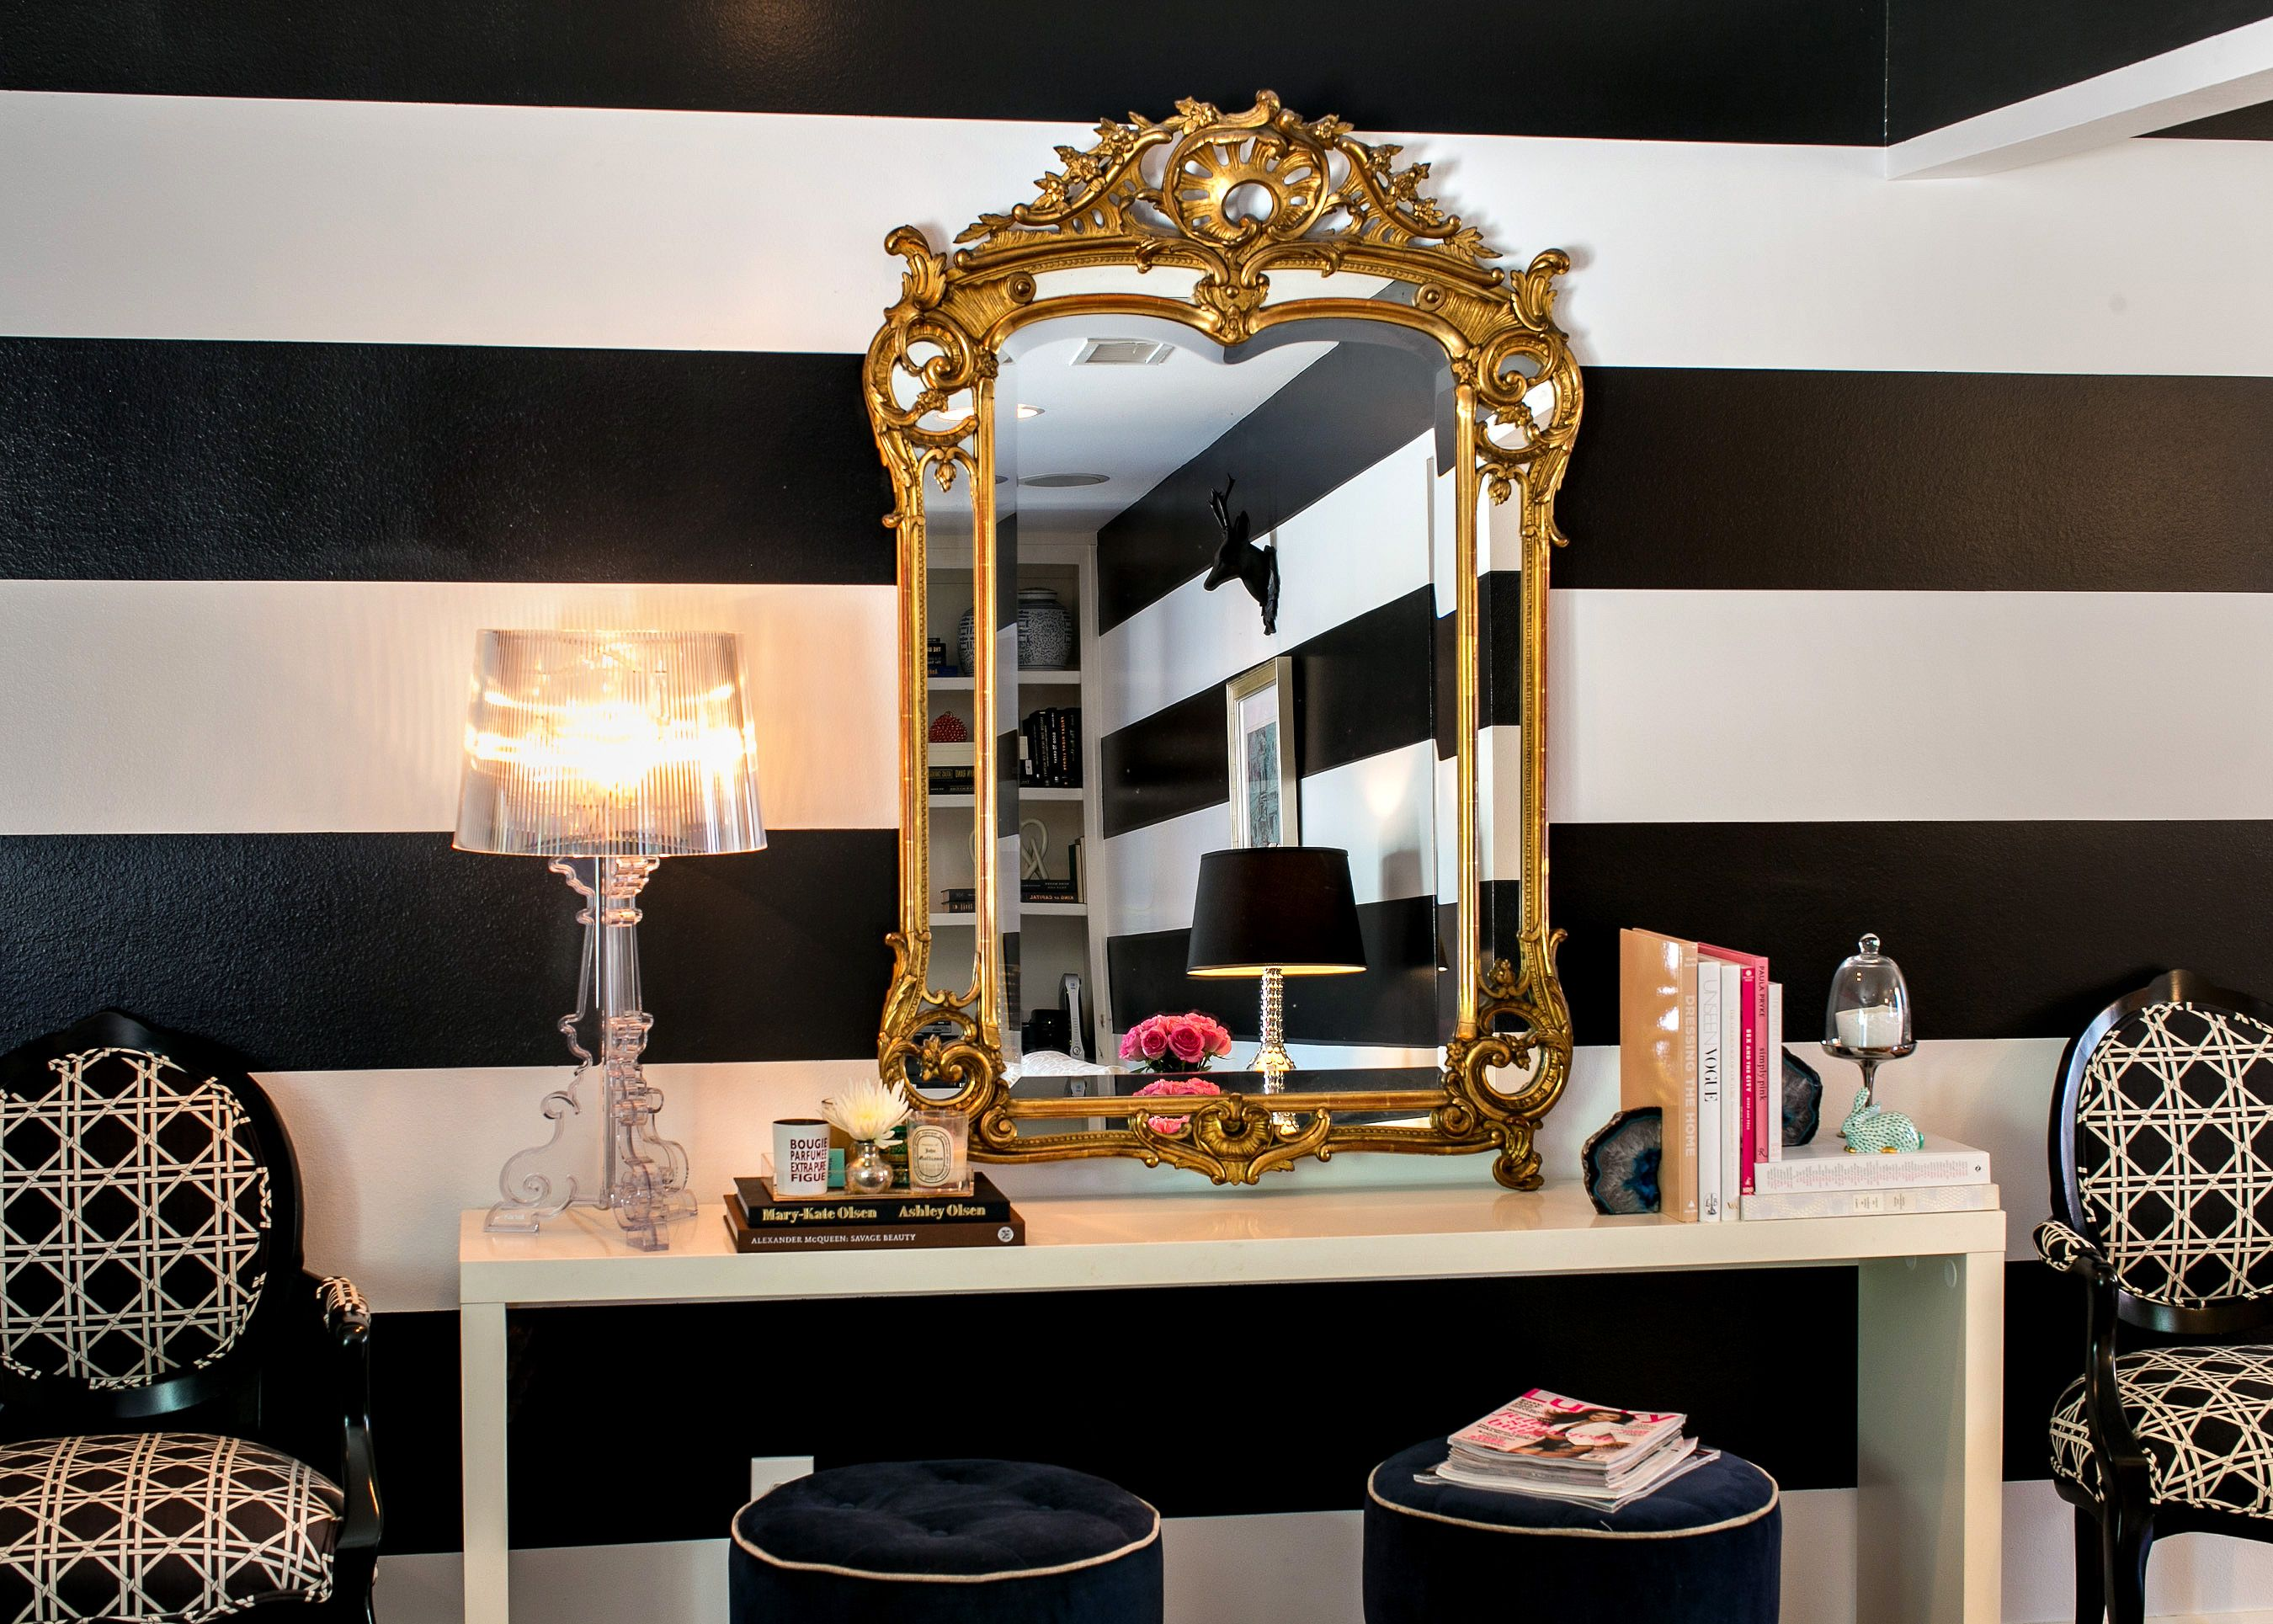 Best Black And White Striped Wall Gold Mirror Lamp Black 400 x 300